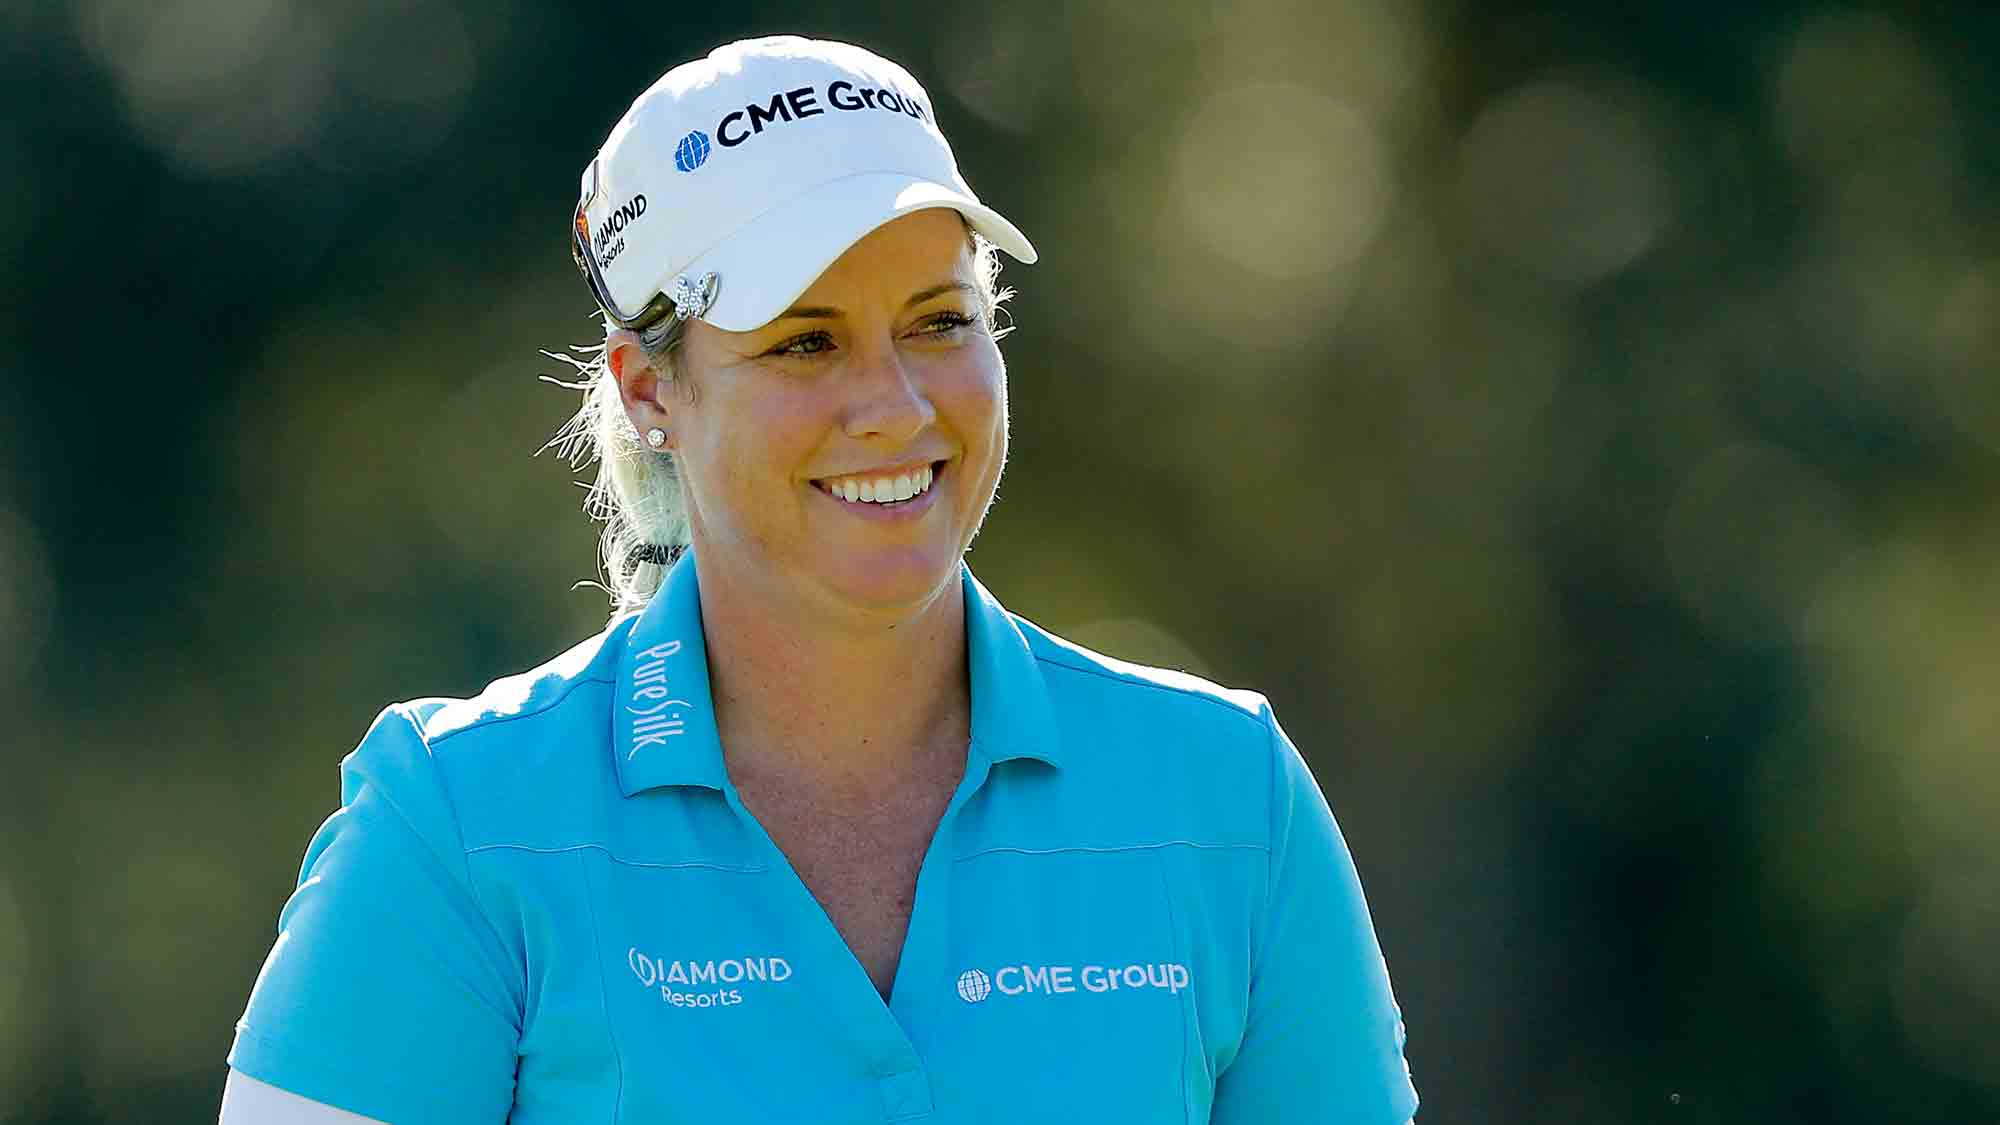 LPGA Tour Player Brittany Lincicome, the U.S. Women's Open and The Memorial Tournament